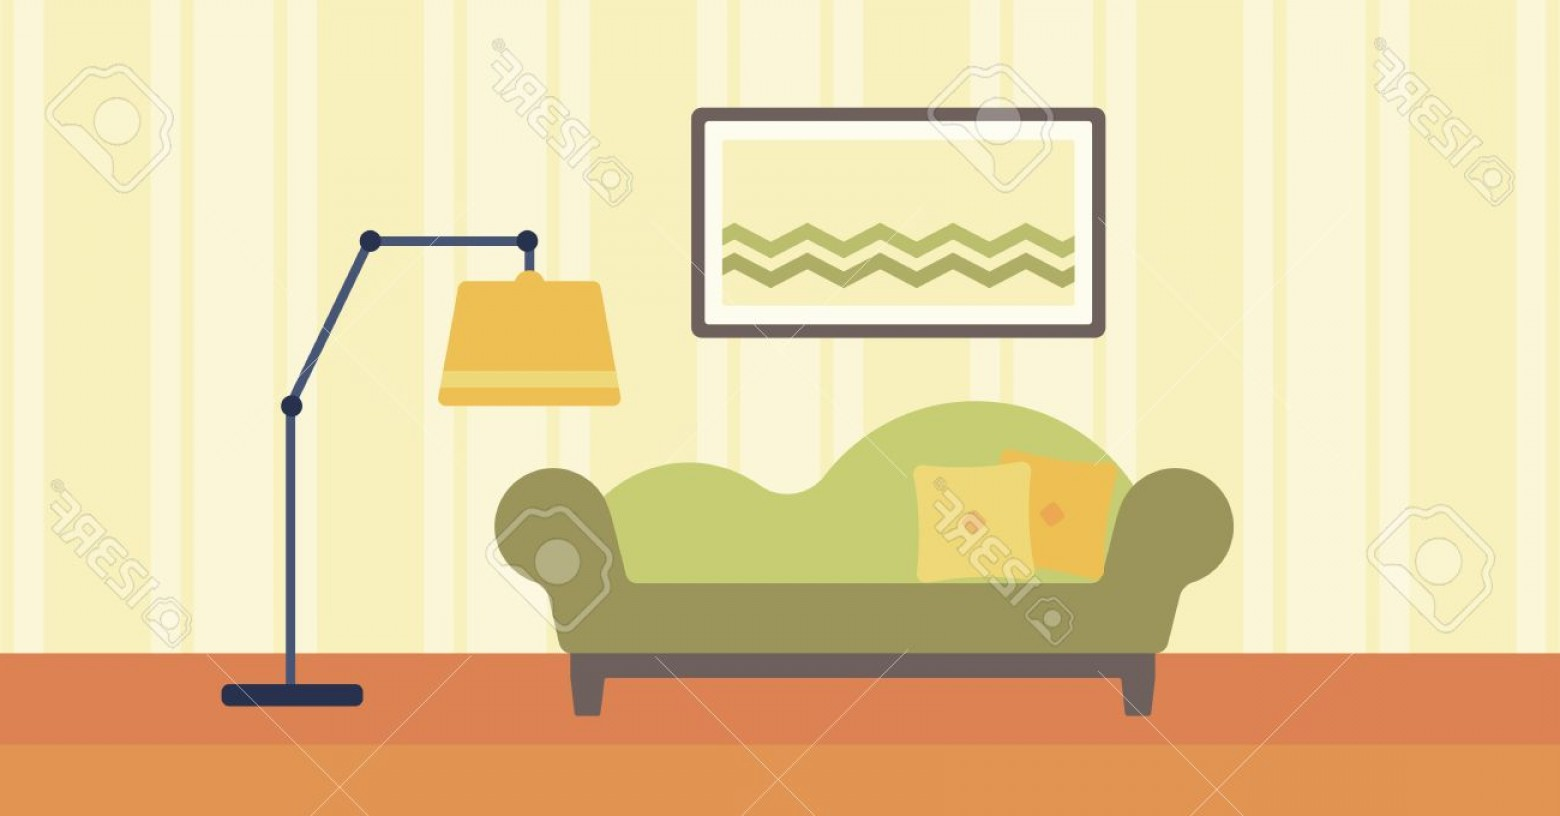 Vector Background For Living Room: Photostock Vector Background Of Living Room With Sofa And Picture On The Wall Vector Flat Design Illustration Horizont